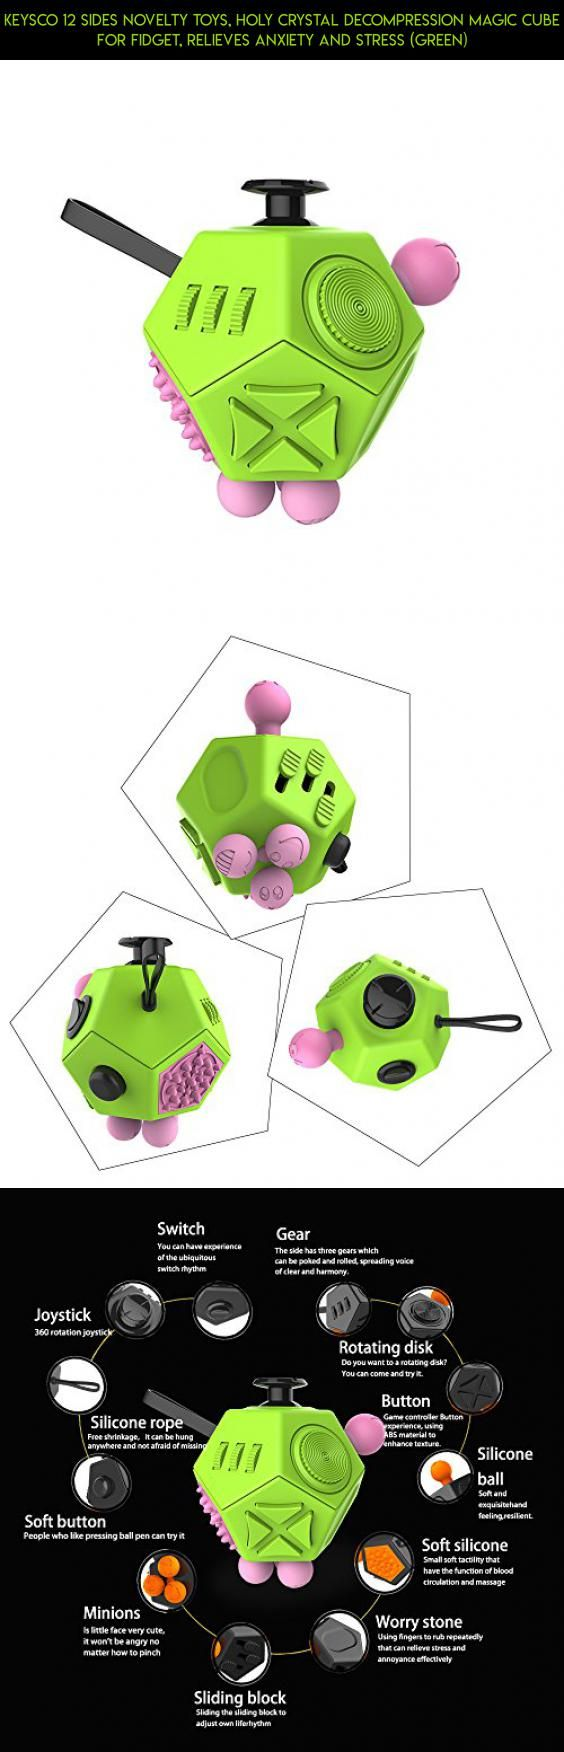 Keysco 12 Sides Novelty Toys, Holy Crystal Decompression Magic Cube For Fidget, Relieves Anxiety And Stress (Green) #tech #parts #technology #cube #kit #drone #fpv #plans #gadgets #fidget #shopping #racing #products #camera #keysco